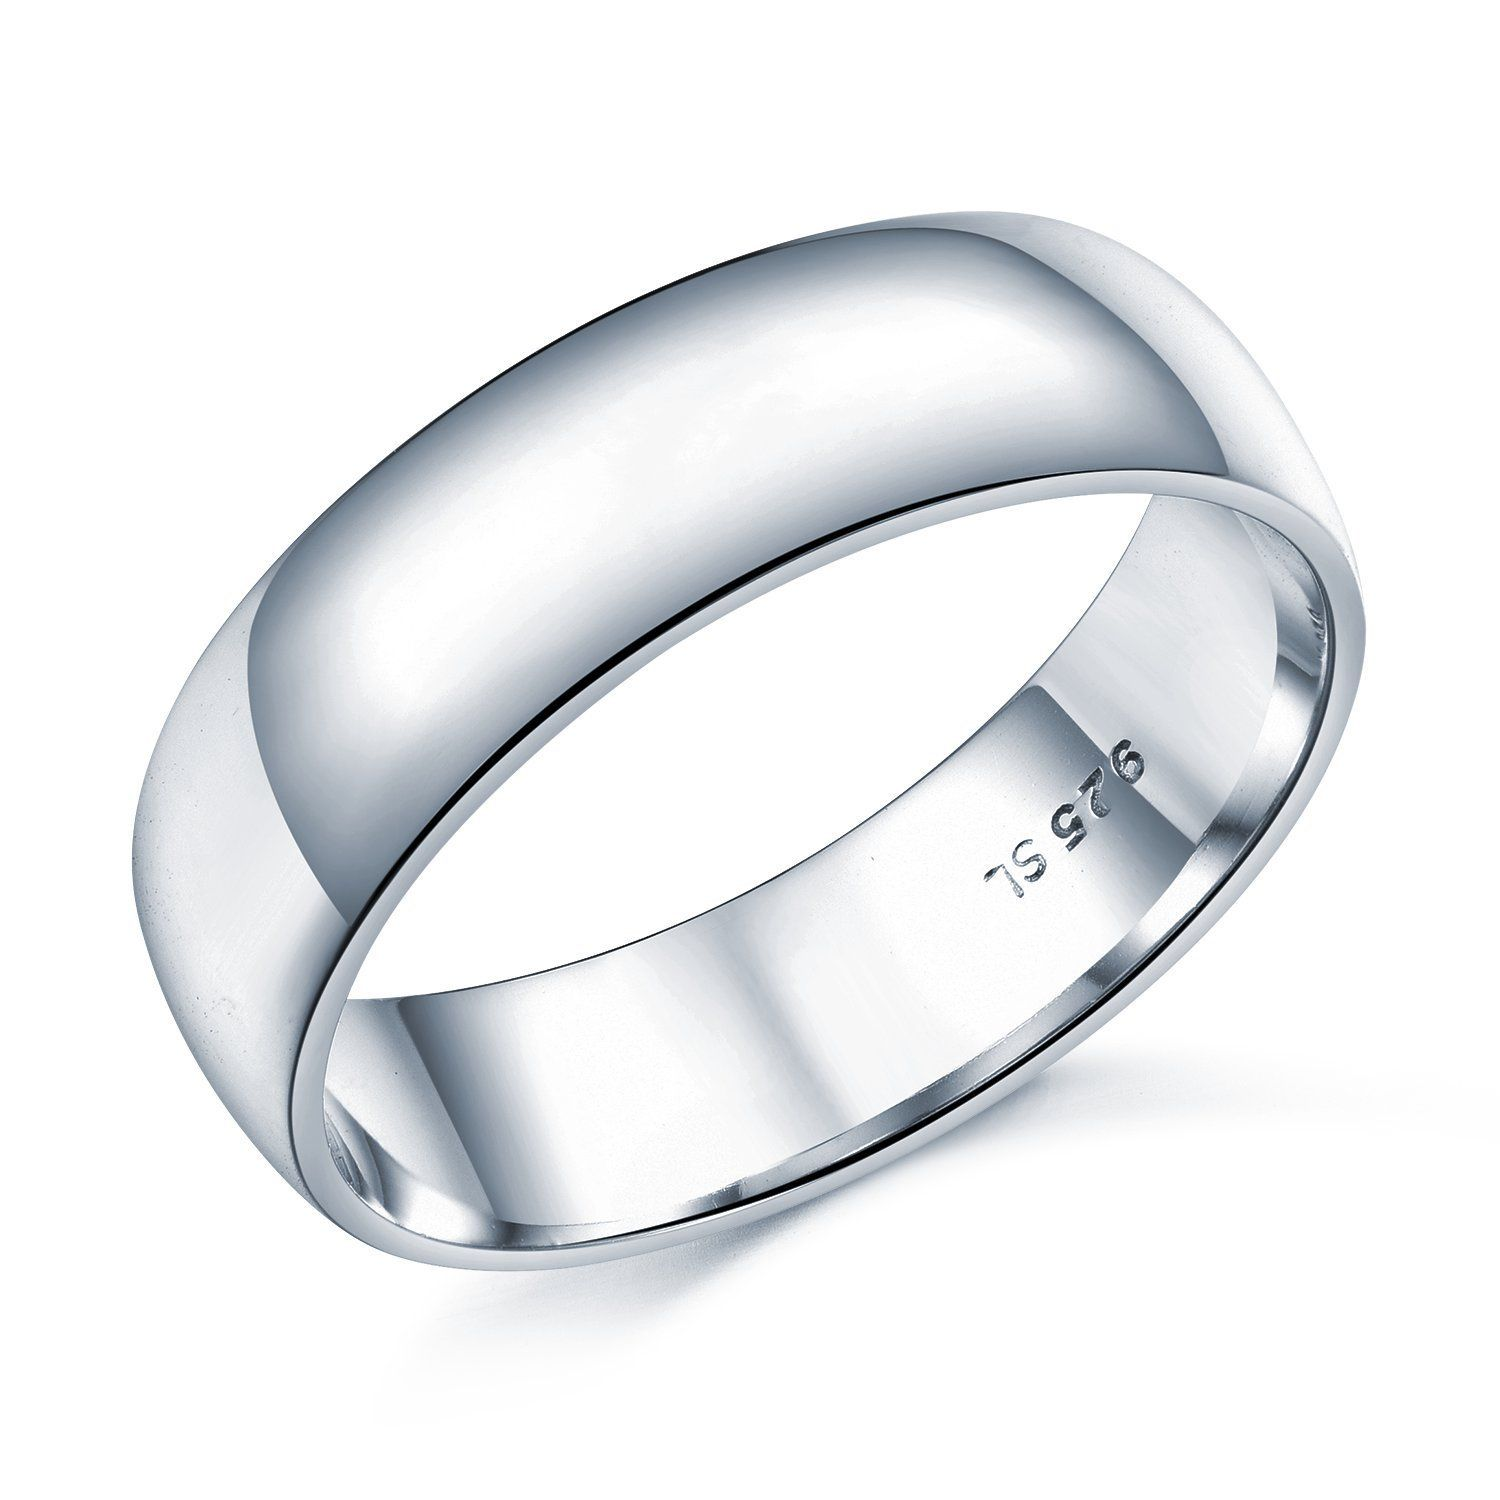 6mm D Shape Heavy Weight Sterling Silver Wedding Band Ring In Sizes Complete Wit Silver Wedding Bands Sterling Silver Wedding Band Wedding Ring Bands